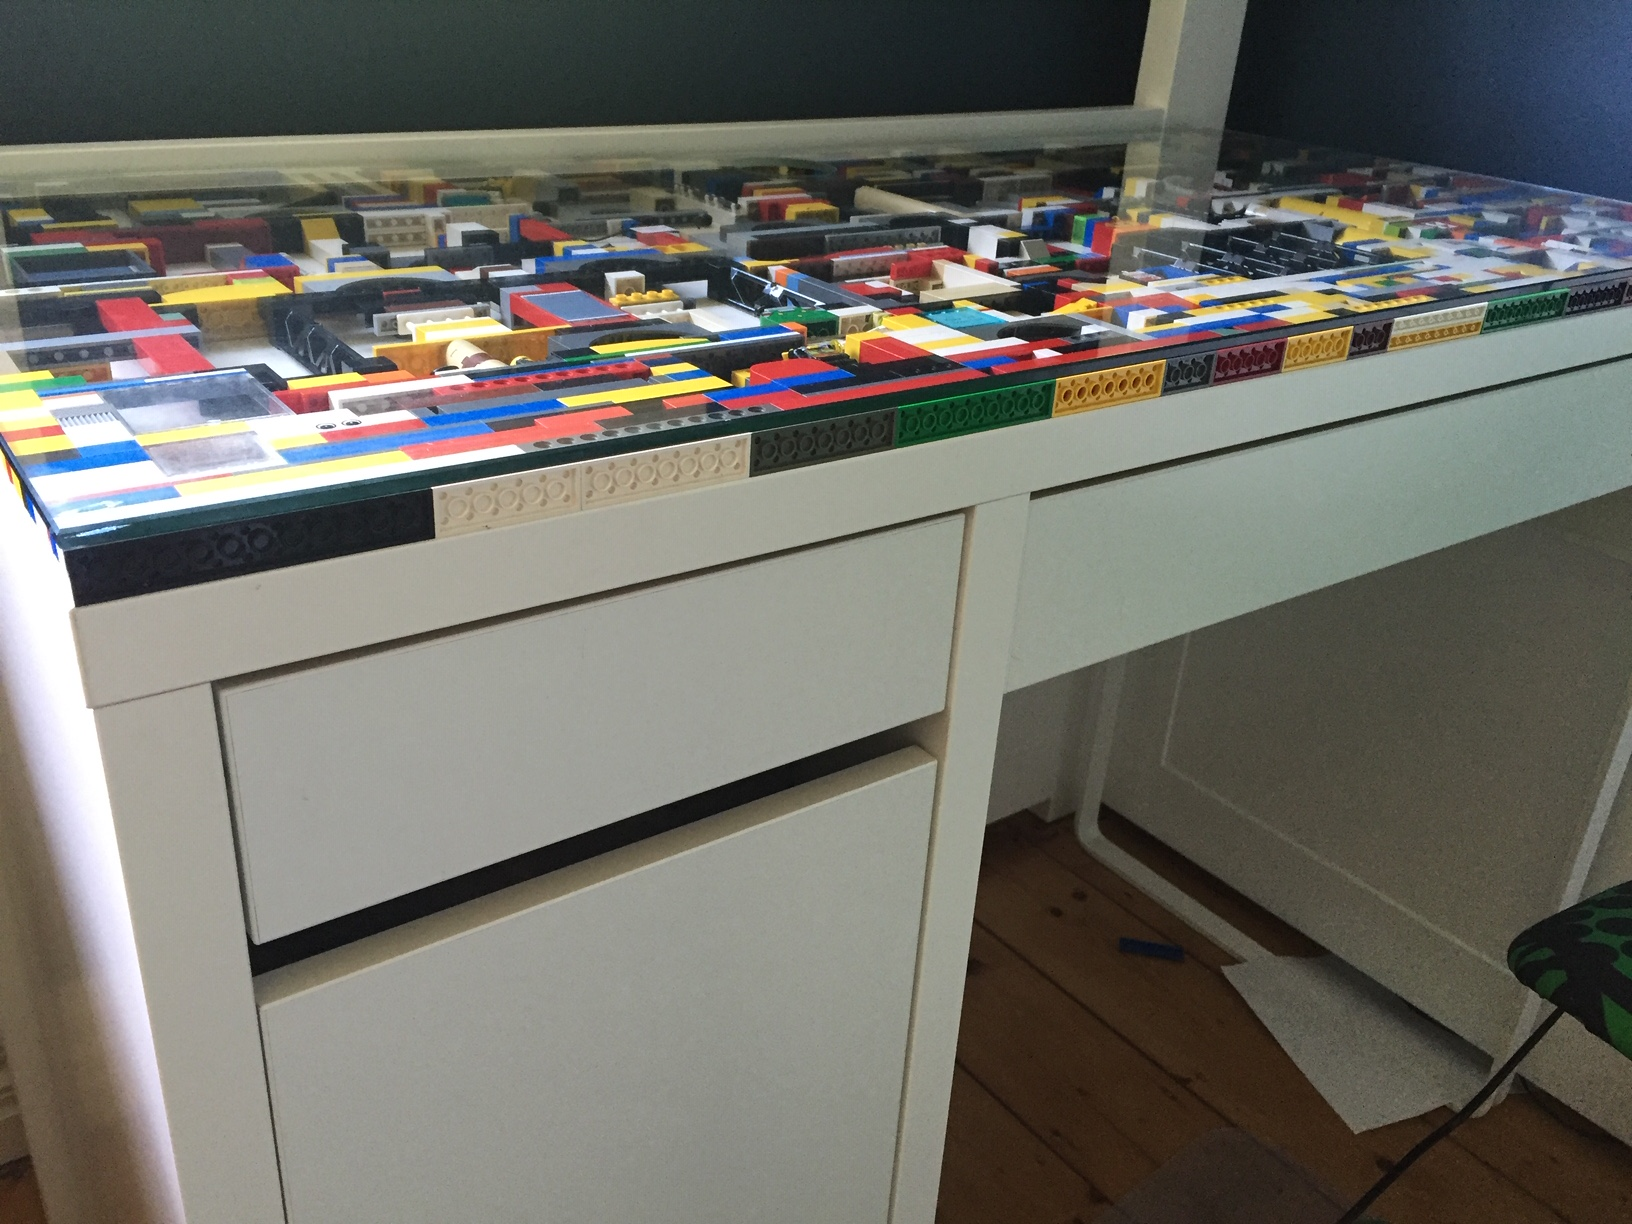 Lego table is complete